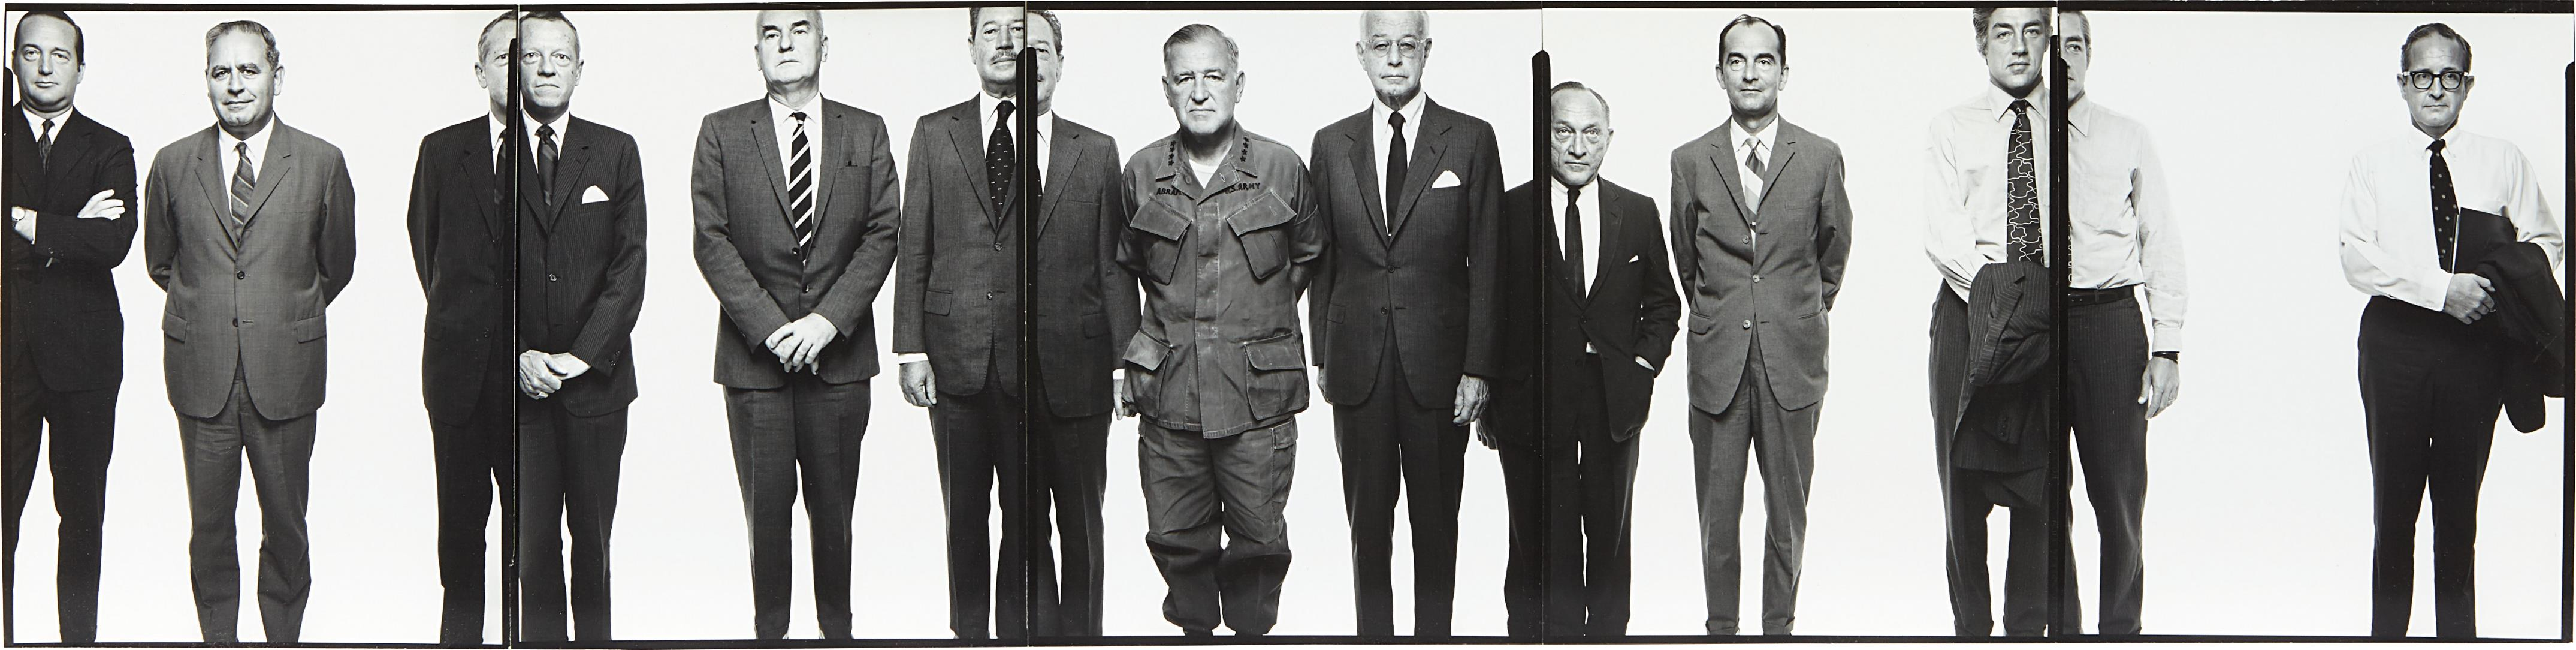 Richard Avedon-The Mission Council, Saigon, April 27, 1971-1971